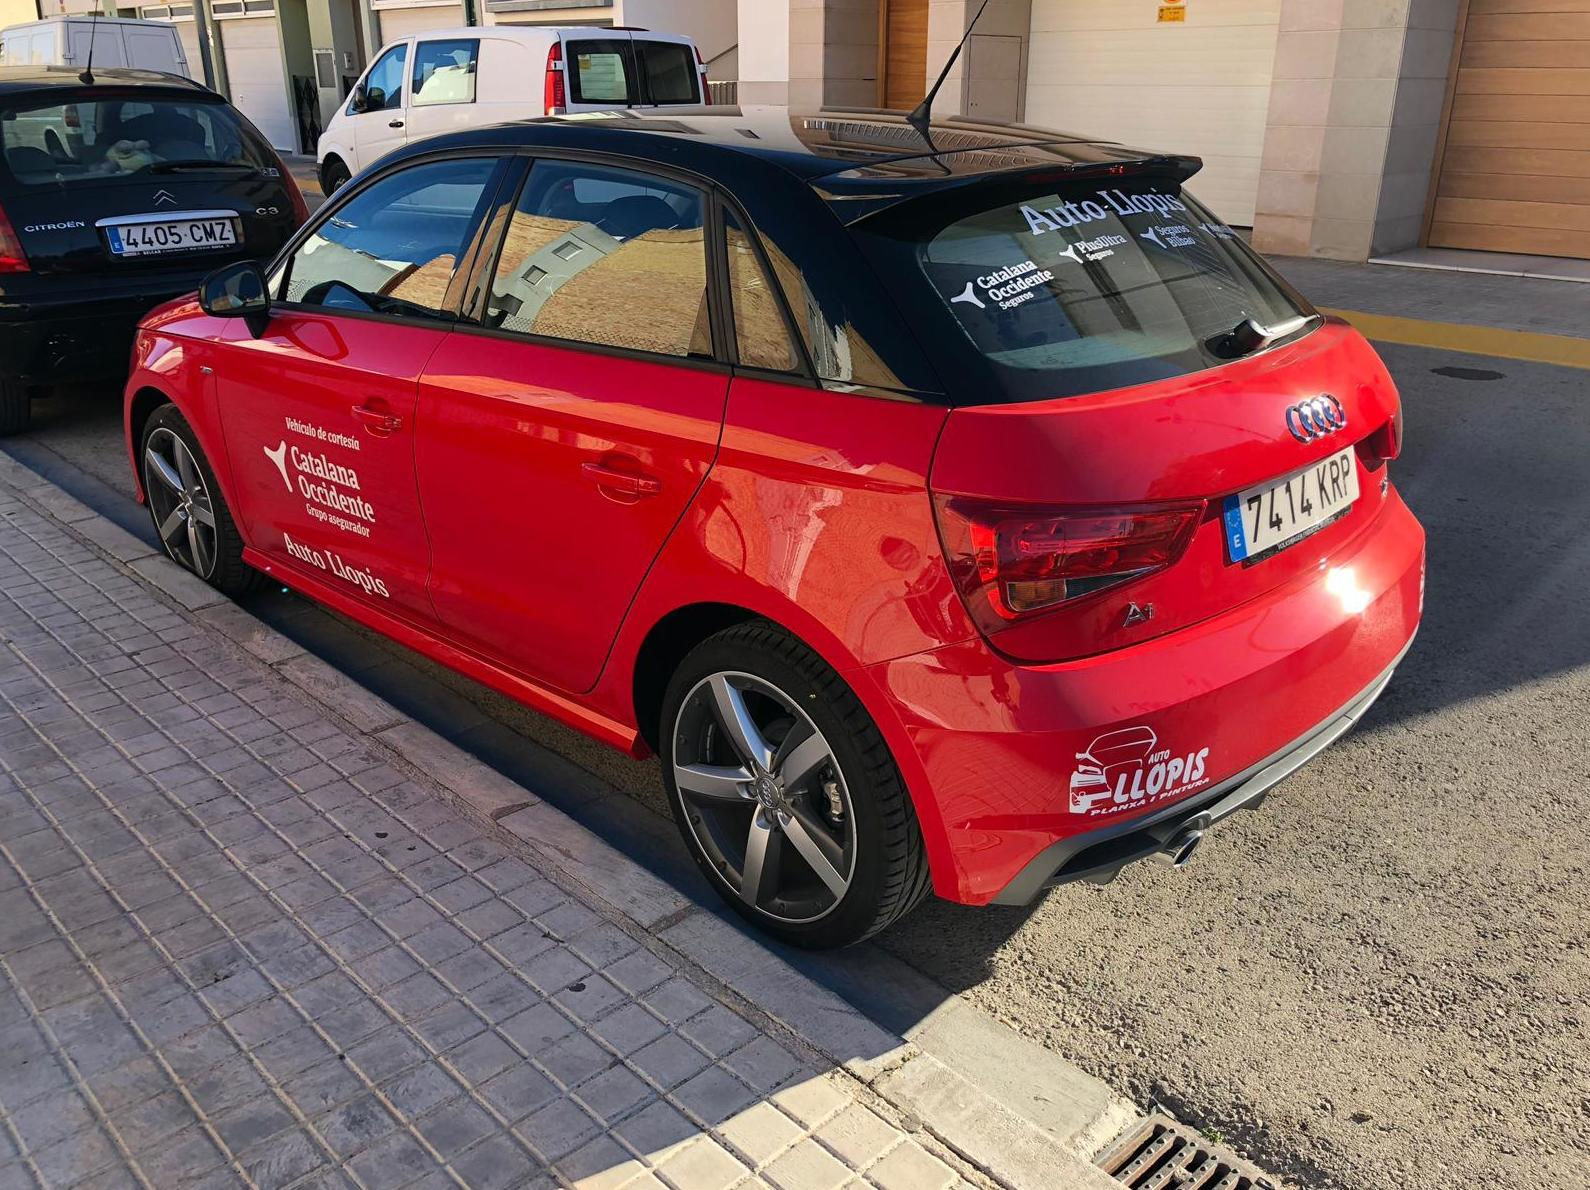 Audi A1 vehiculo de cortesia para los asegurados de Catalana Occidente . Seguros Bilbao y Plus Ultra